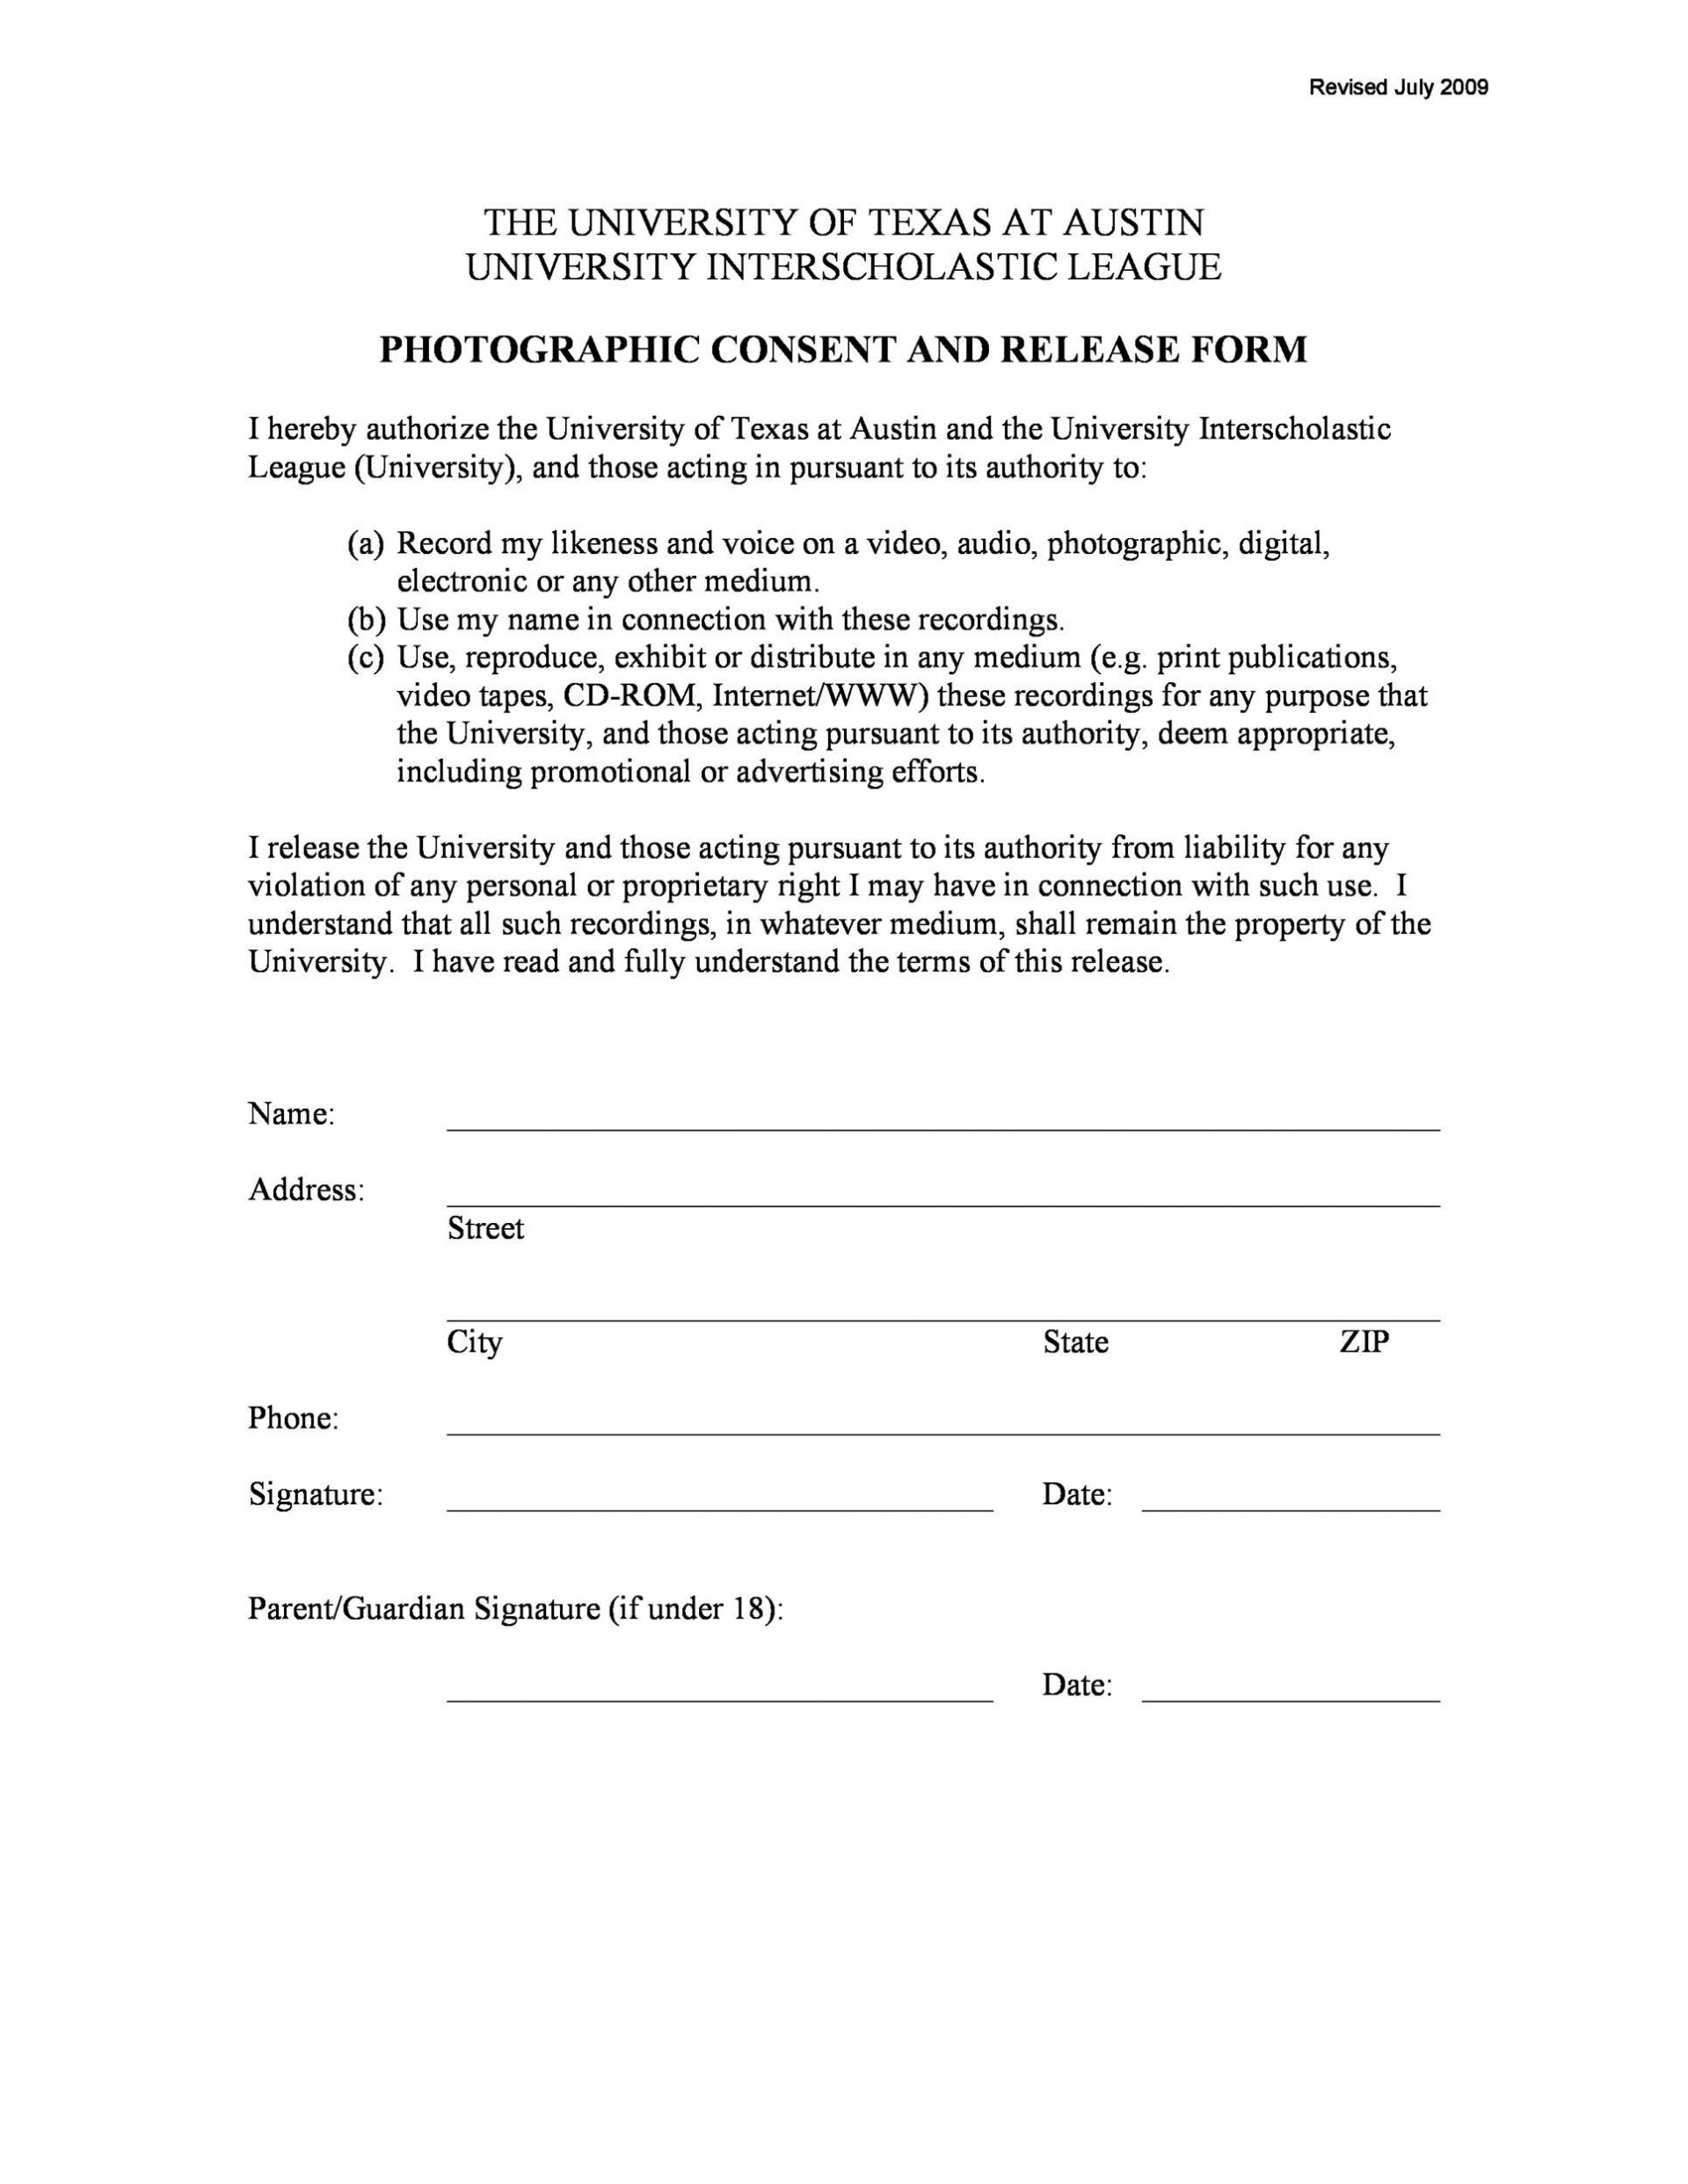 Photo Release Form Template Addictionary